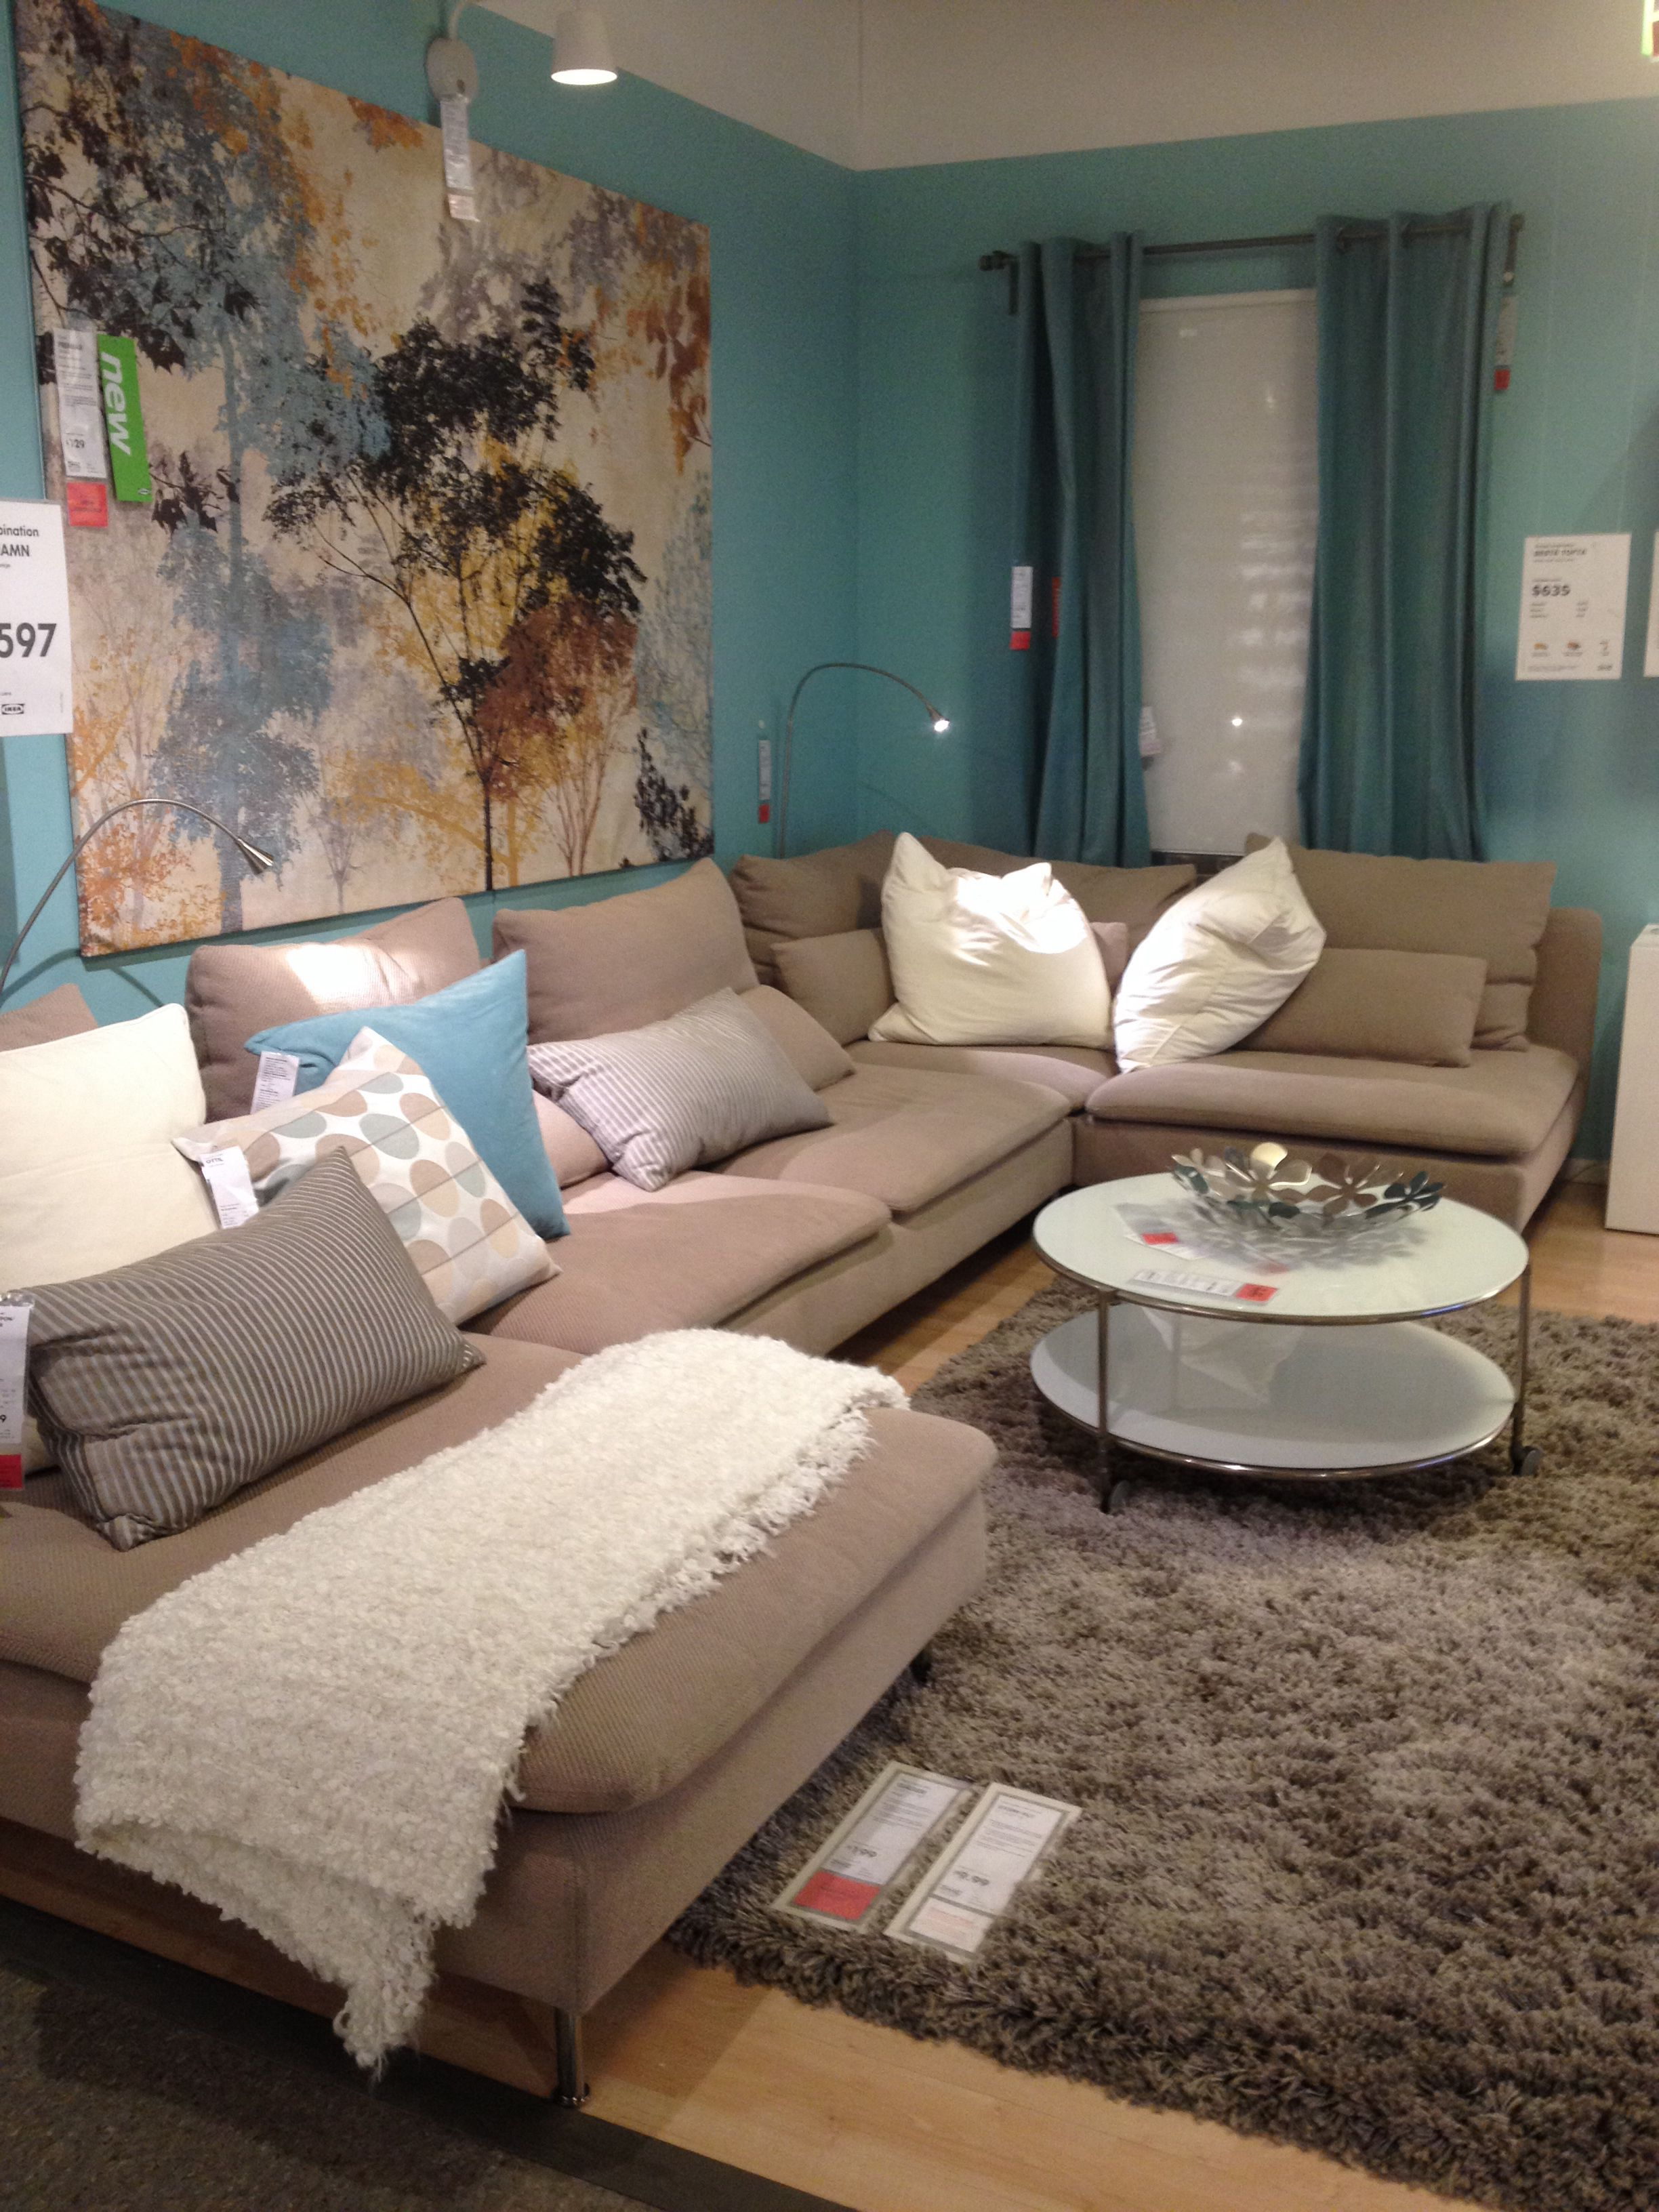 Ikea Wohnzimmer Design Ikea Living Room Teal Creams And Mellow Accents Top 24 Ikea